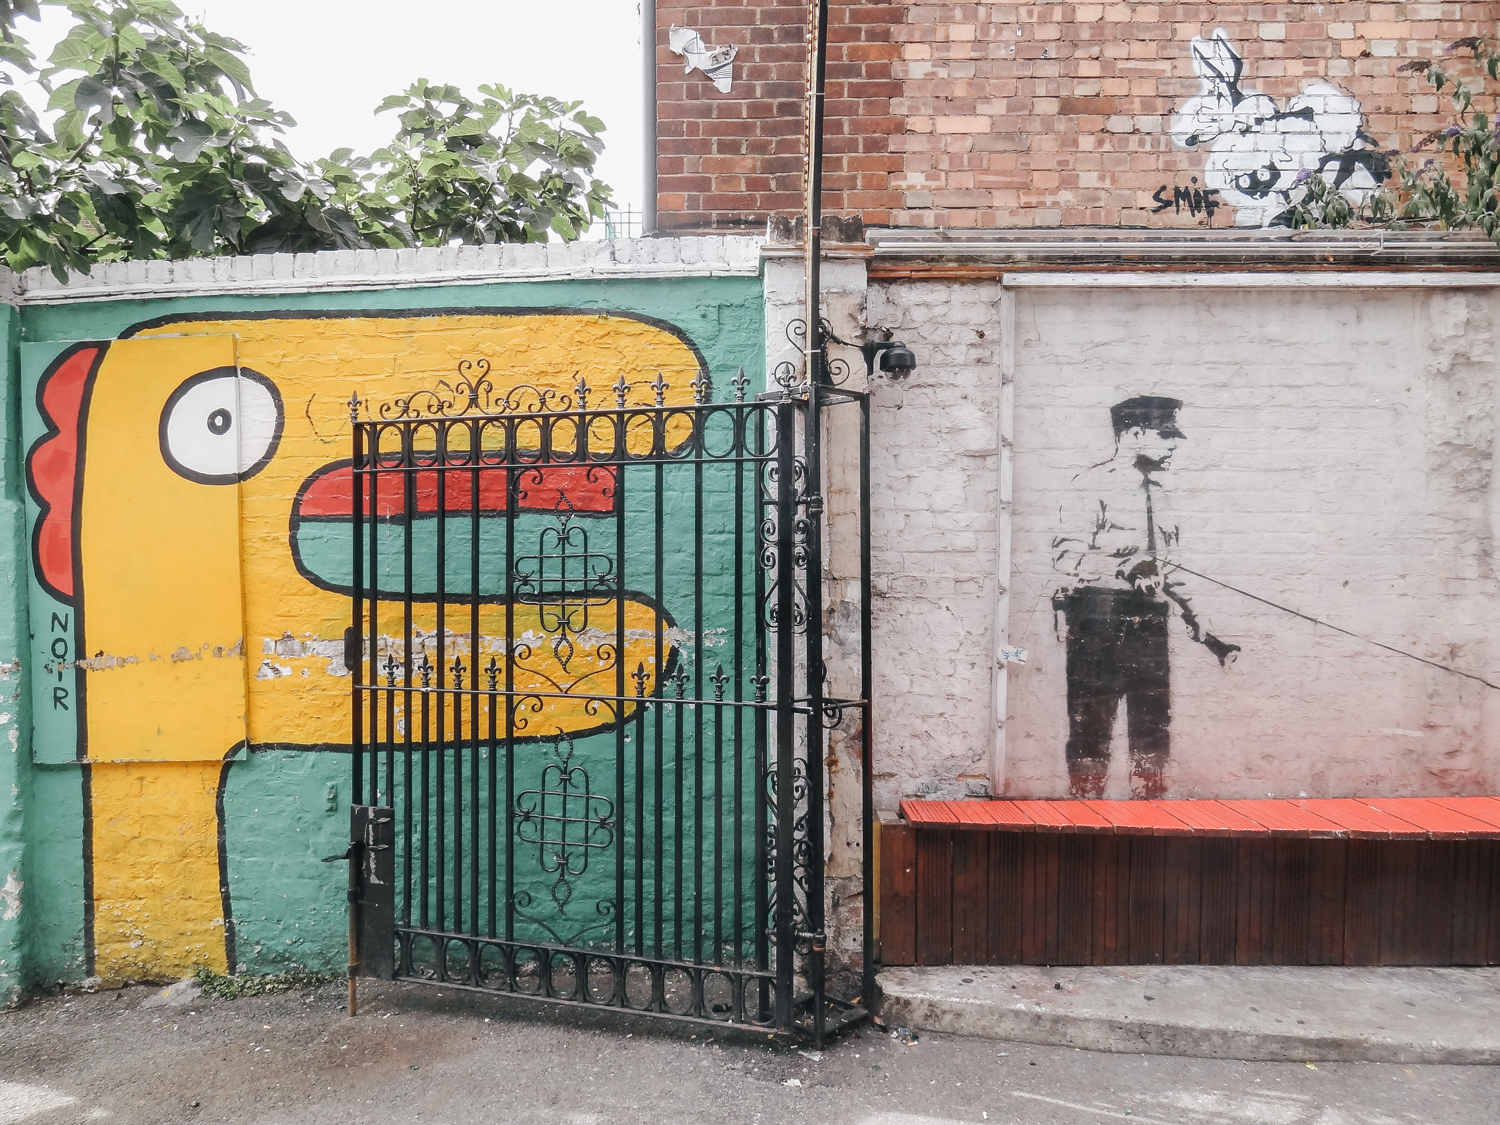 East end, London street art, blog voyage